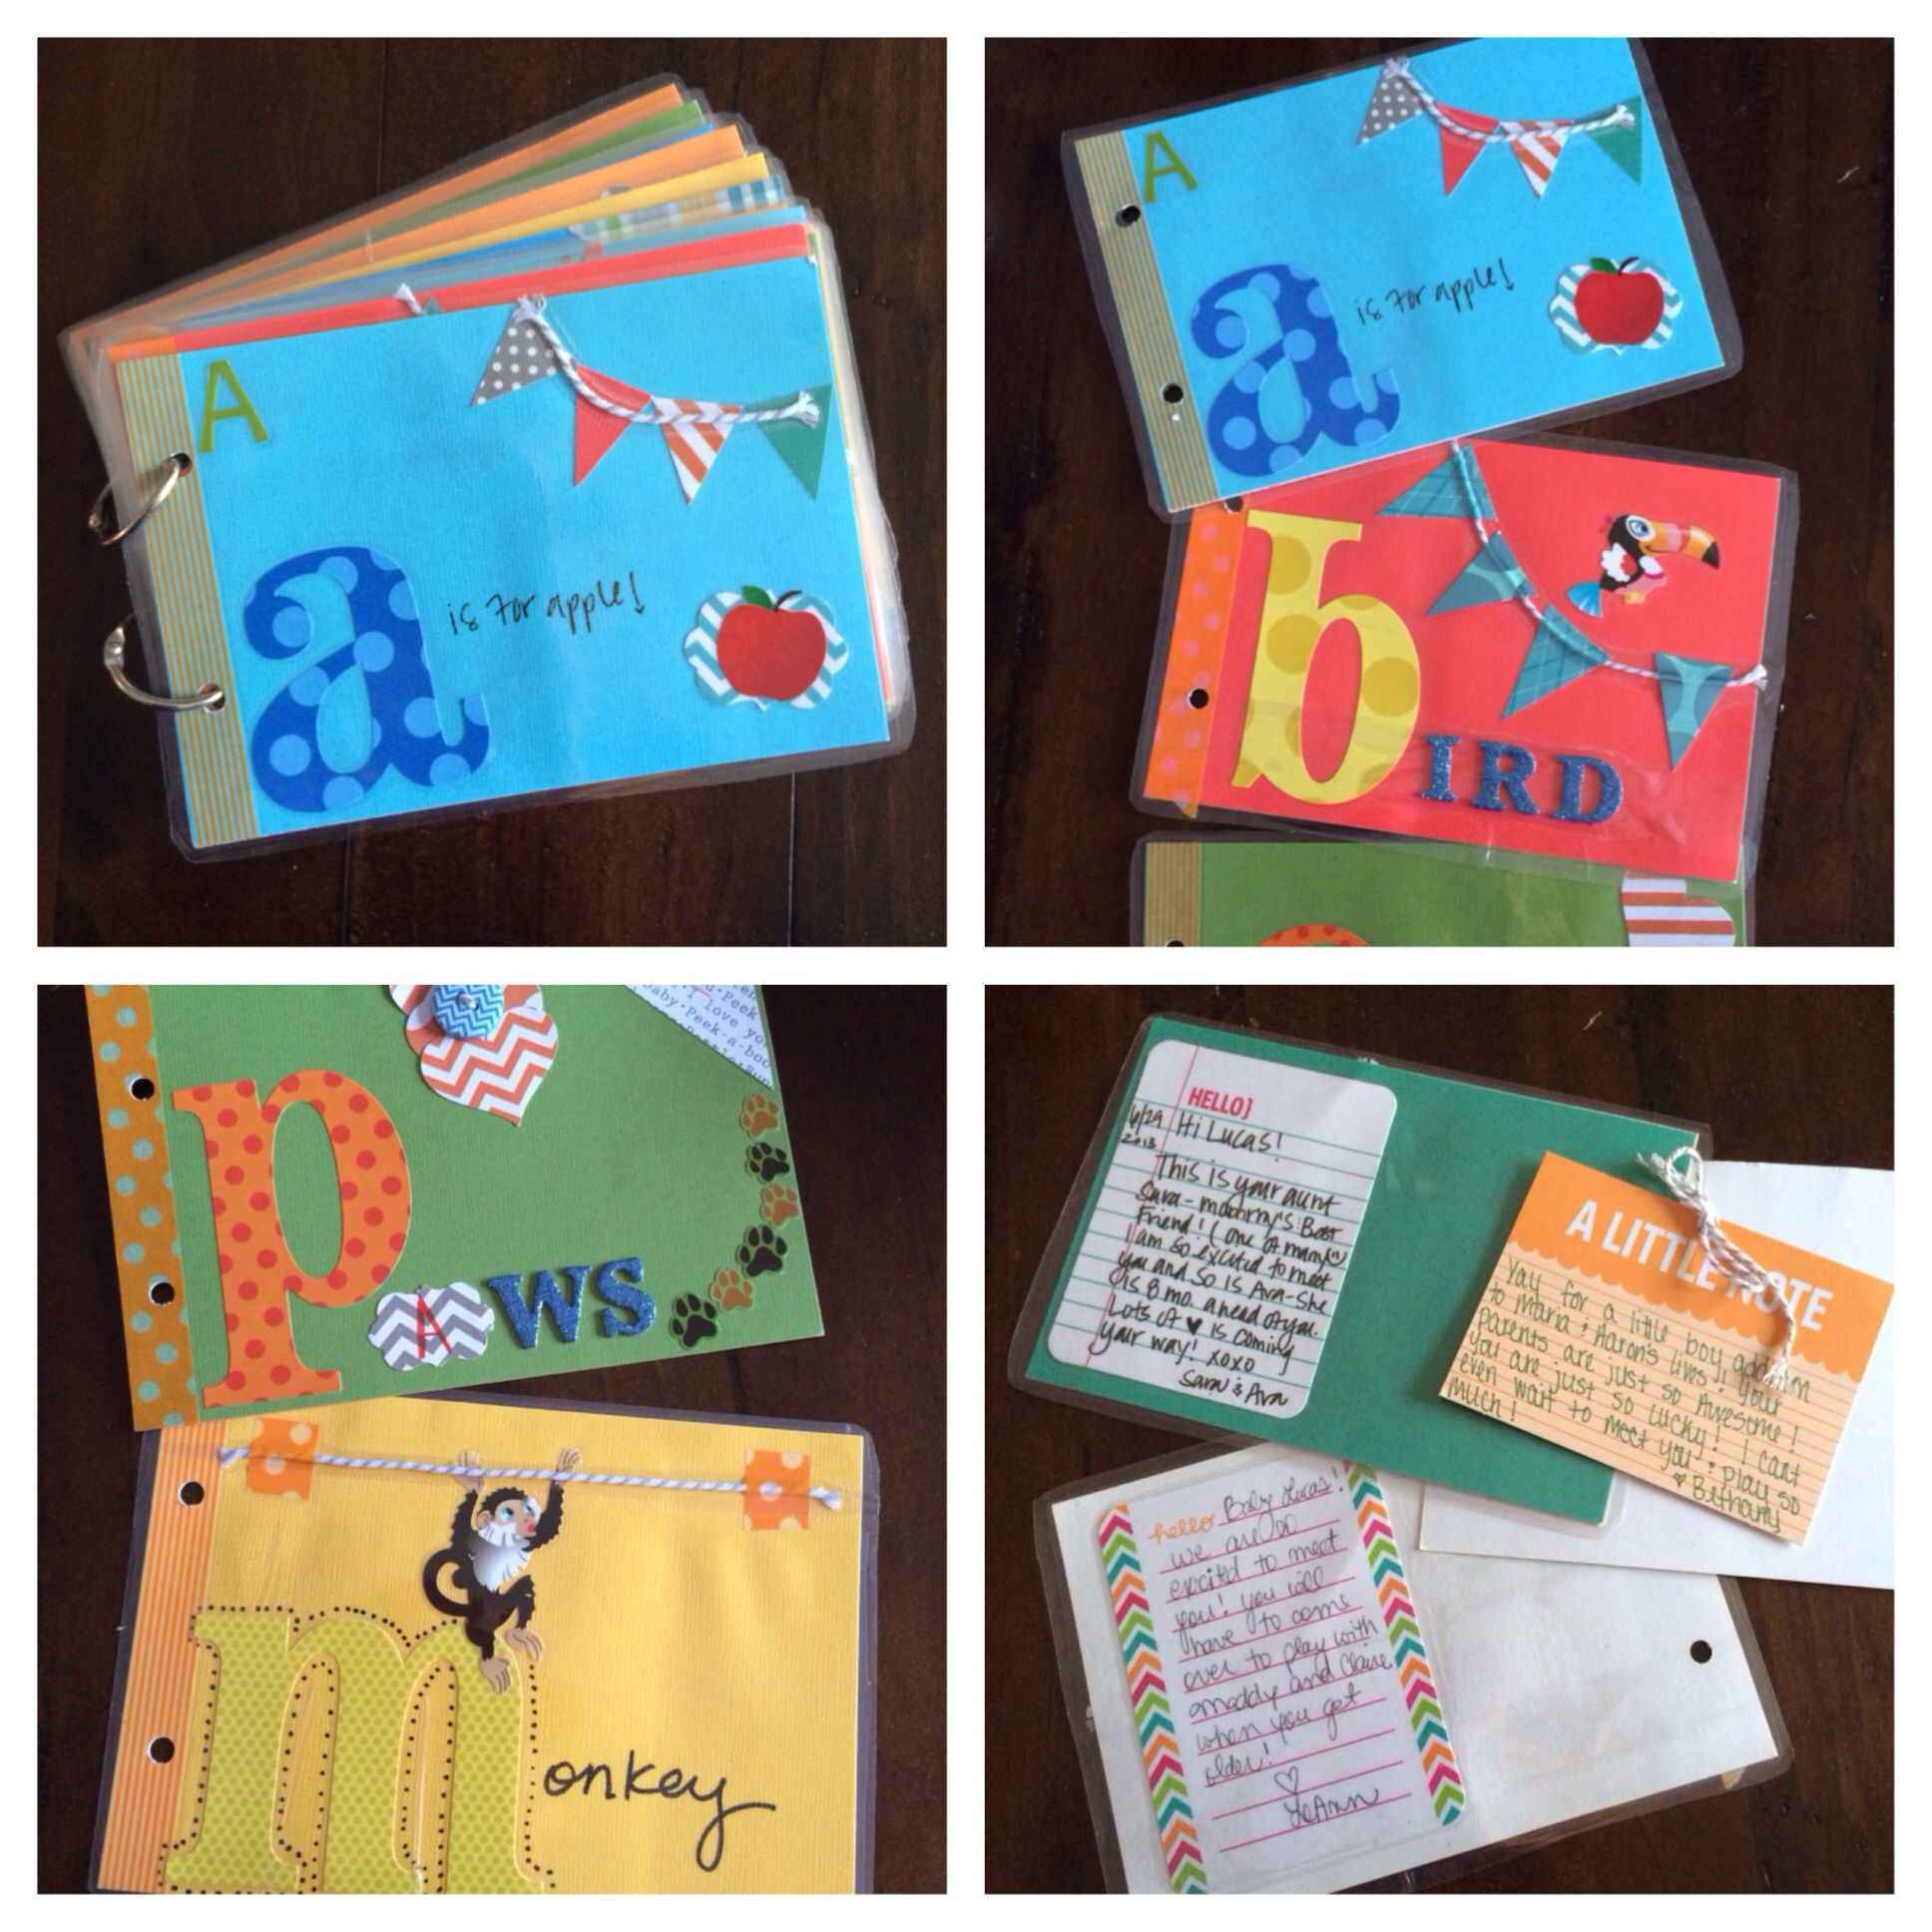 Abc scrapbook ideas list - Baby Shower Little Kid Birthday Idea Diy Abc Book Have All Guests Decorate A Small Scrapbook Page With Letters Or Numbers And Write A Note On The Back